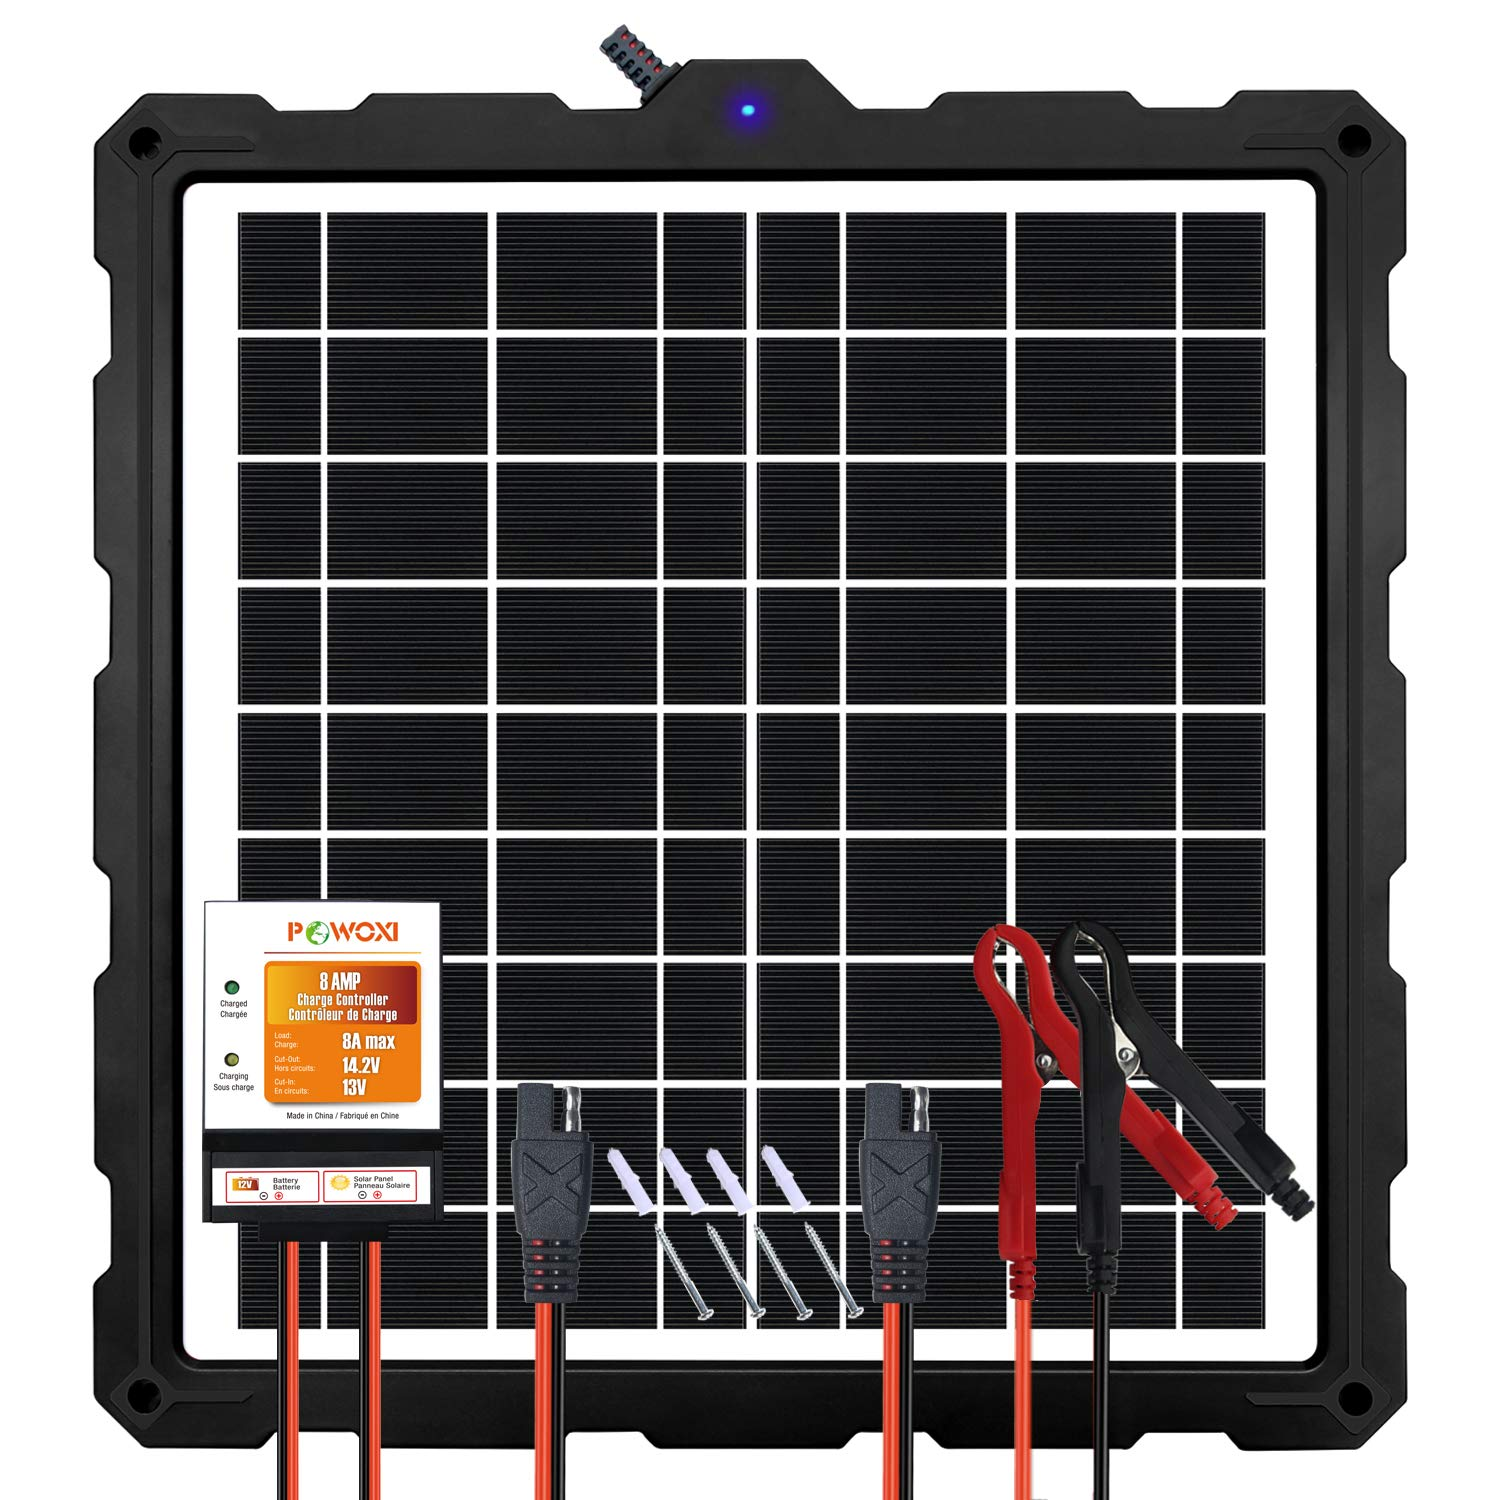 POWOXI-Upgraded-20W-Solar-Battery-Charger-Maintainer, External Smart 3-Stages PWM Charge Controller, 12V Solar Panel Trickle Charging Kit for Car, Marine, Motorcycle, RV, etc